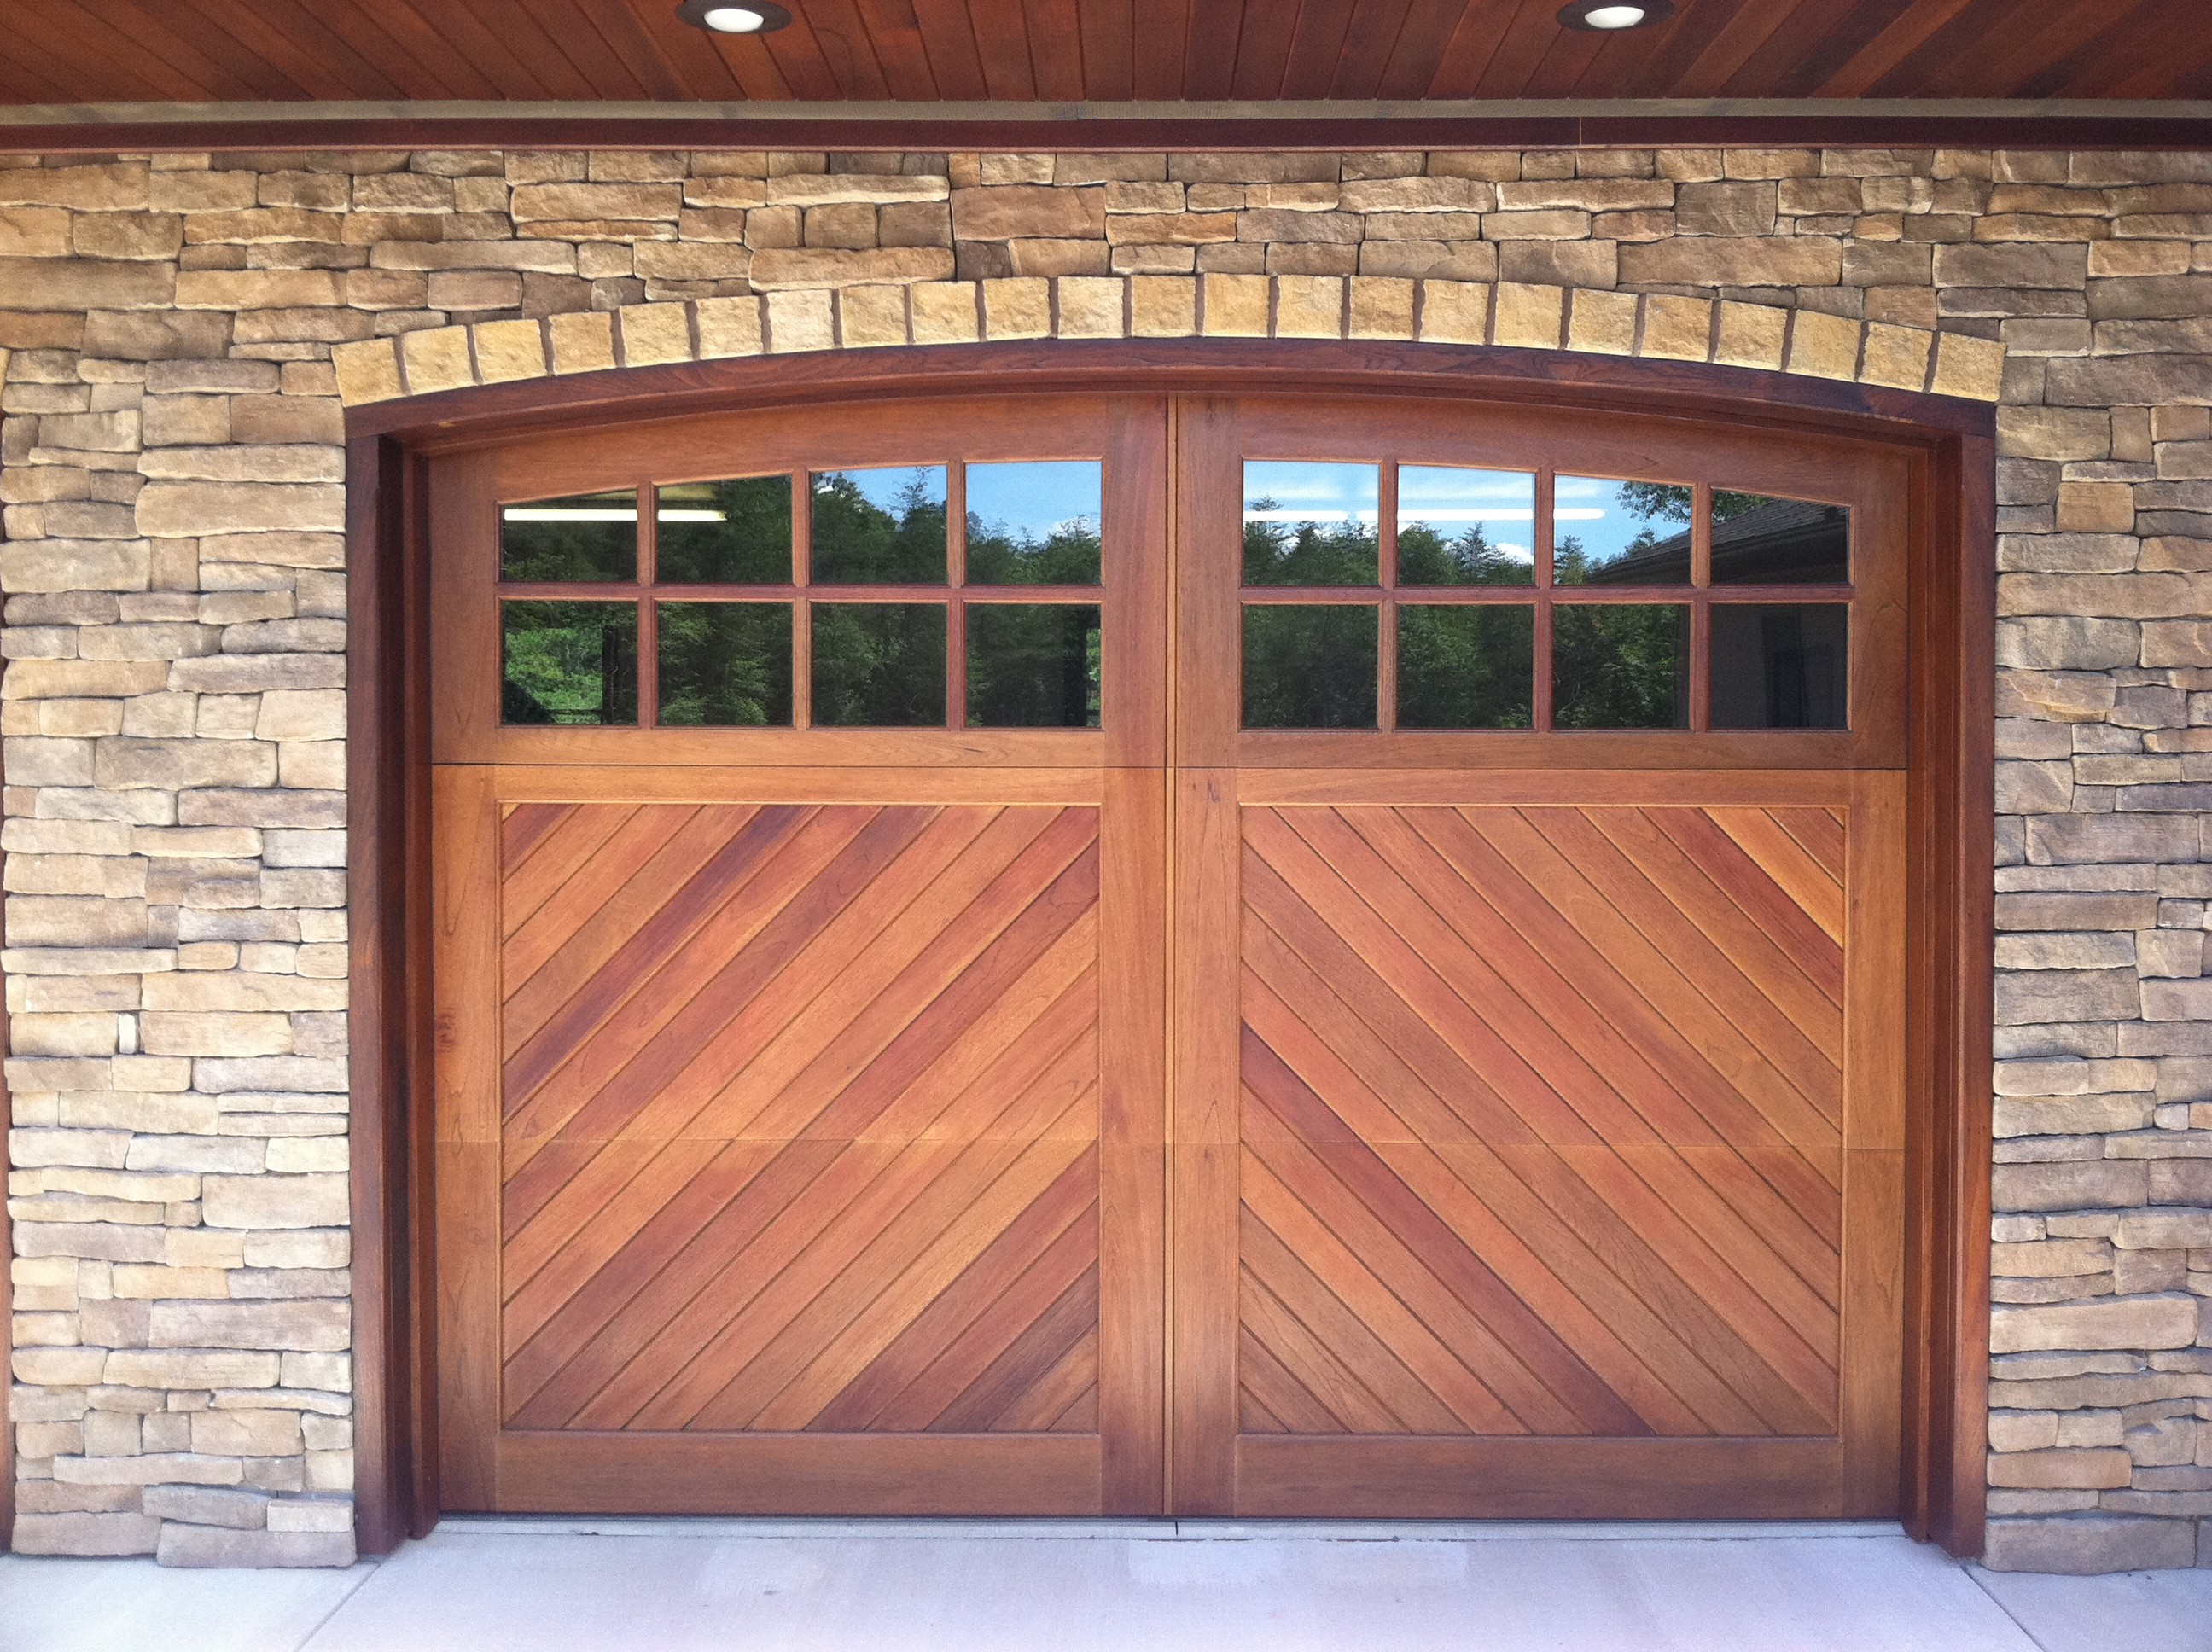 Carriage garage doors - Carriage Garage Doors 42